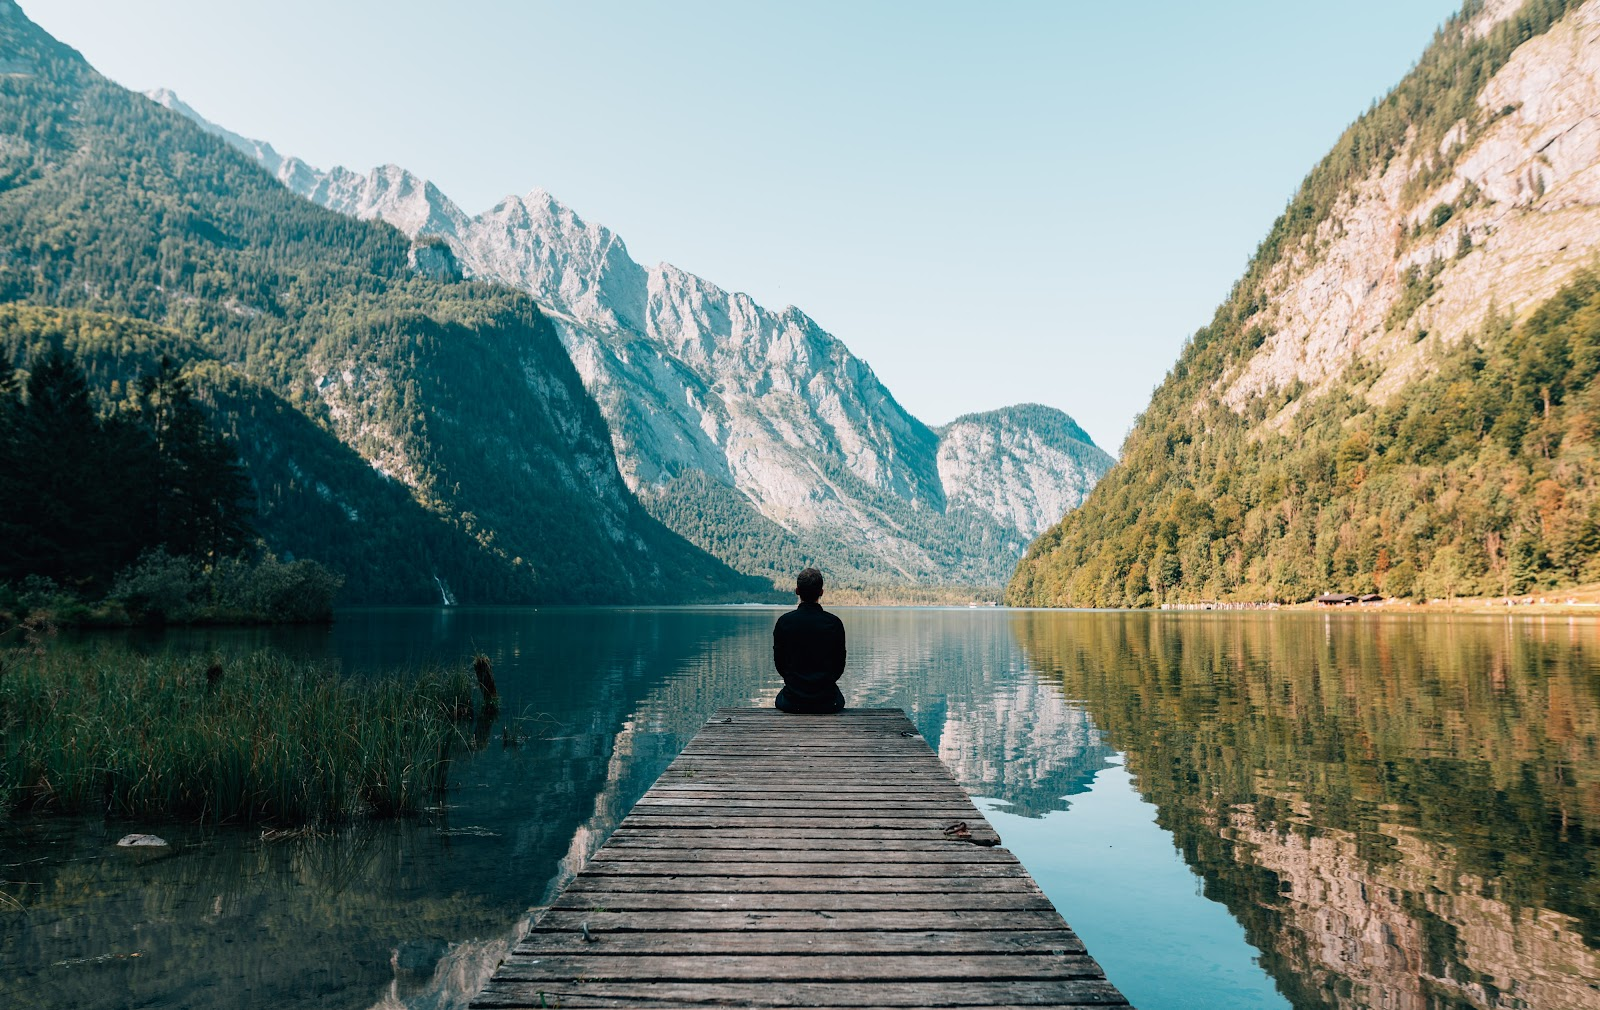 The mindfulness association (A complete review)